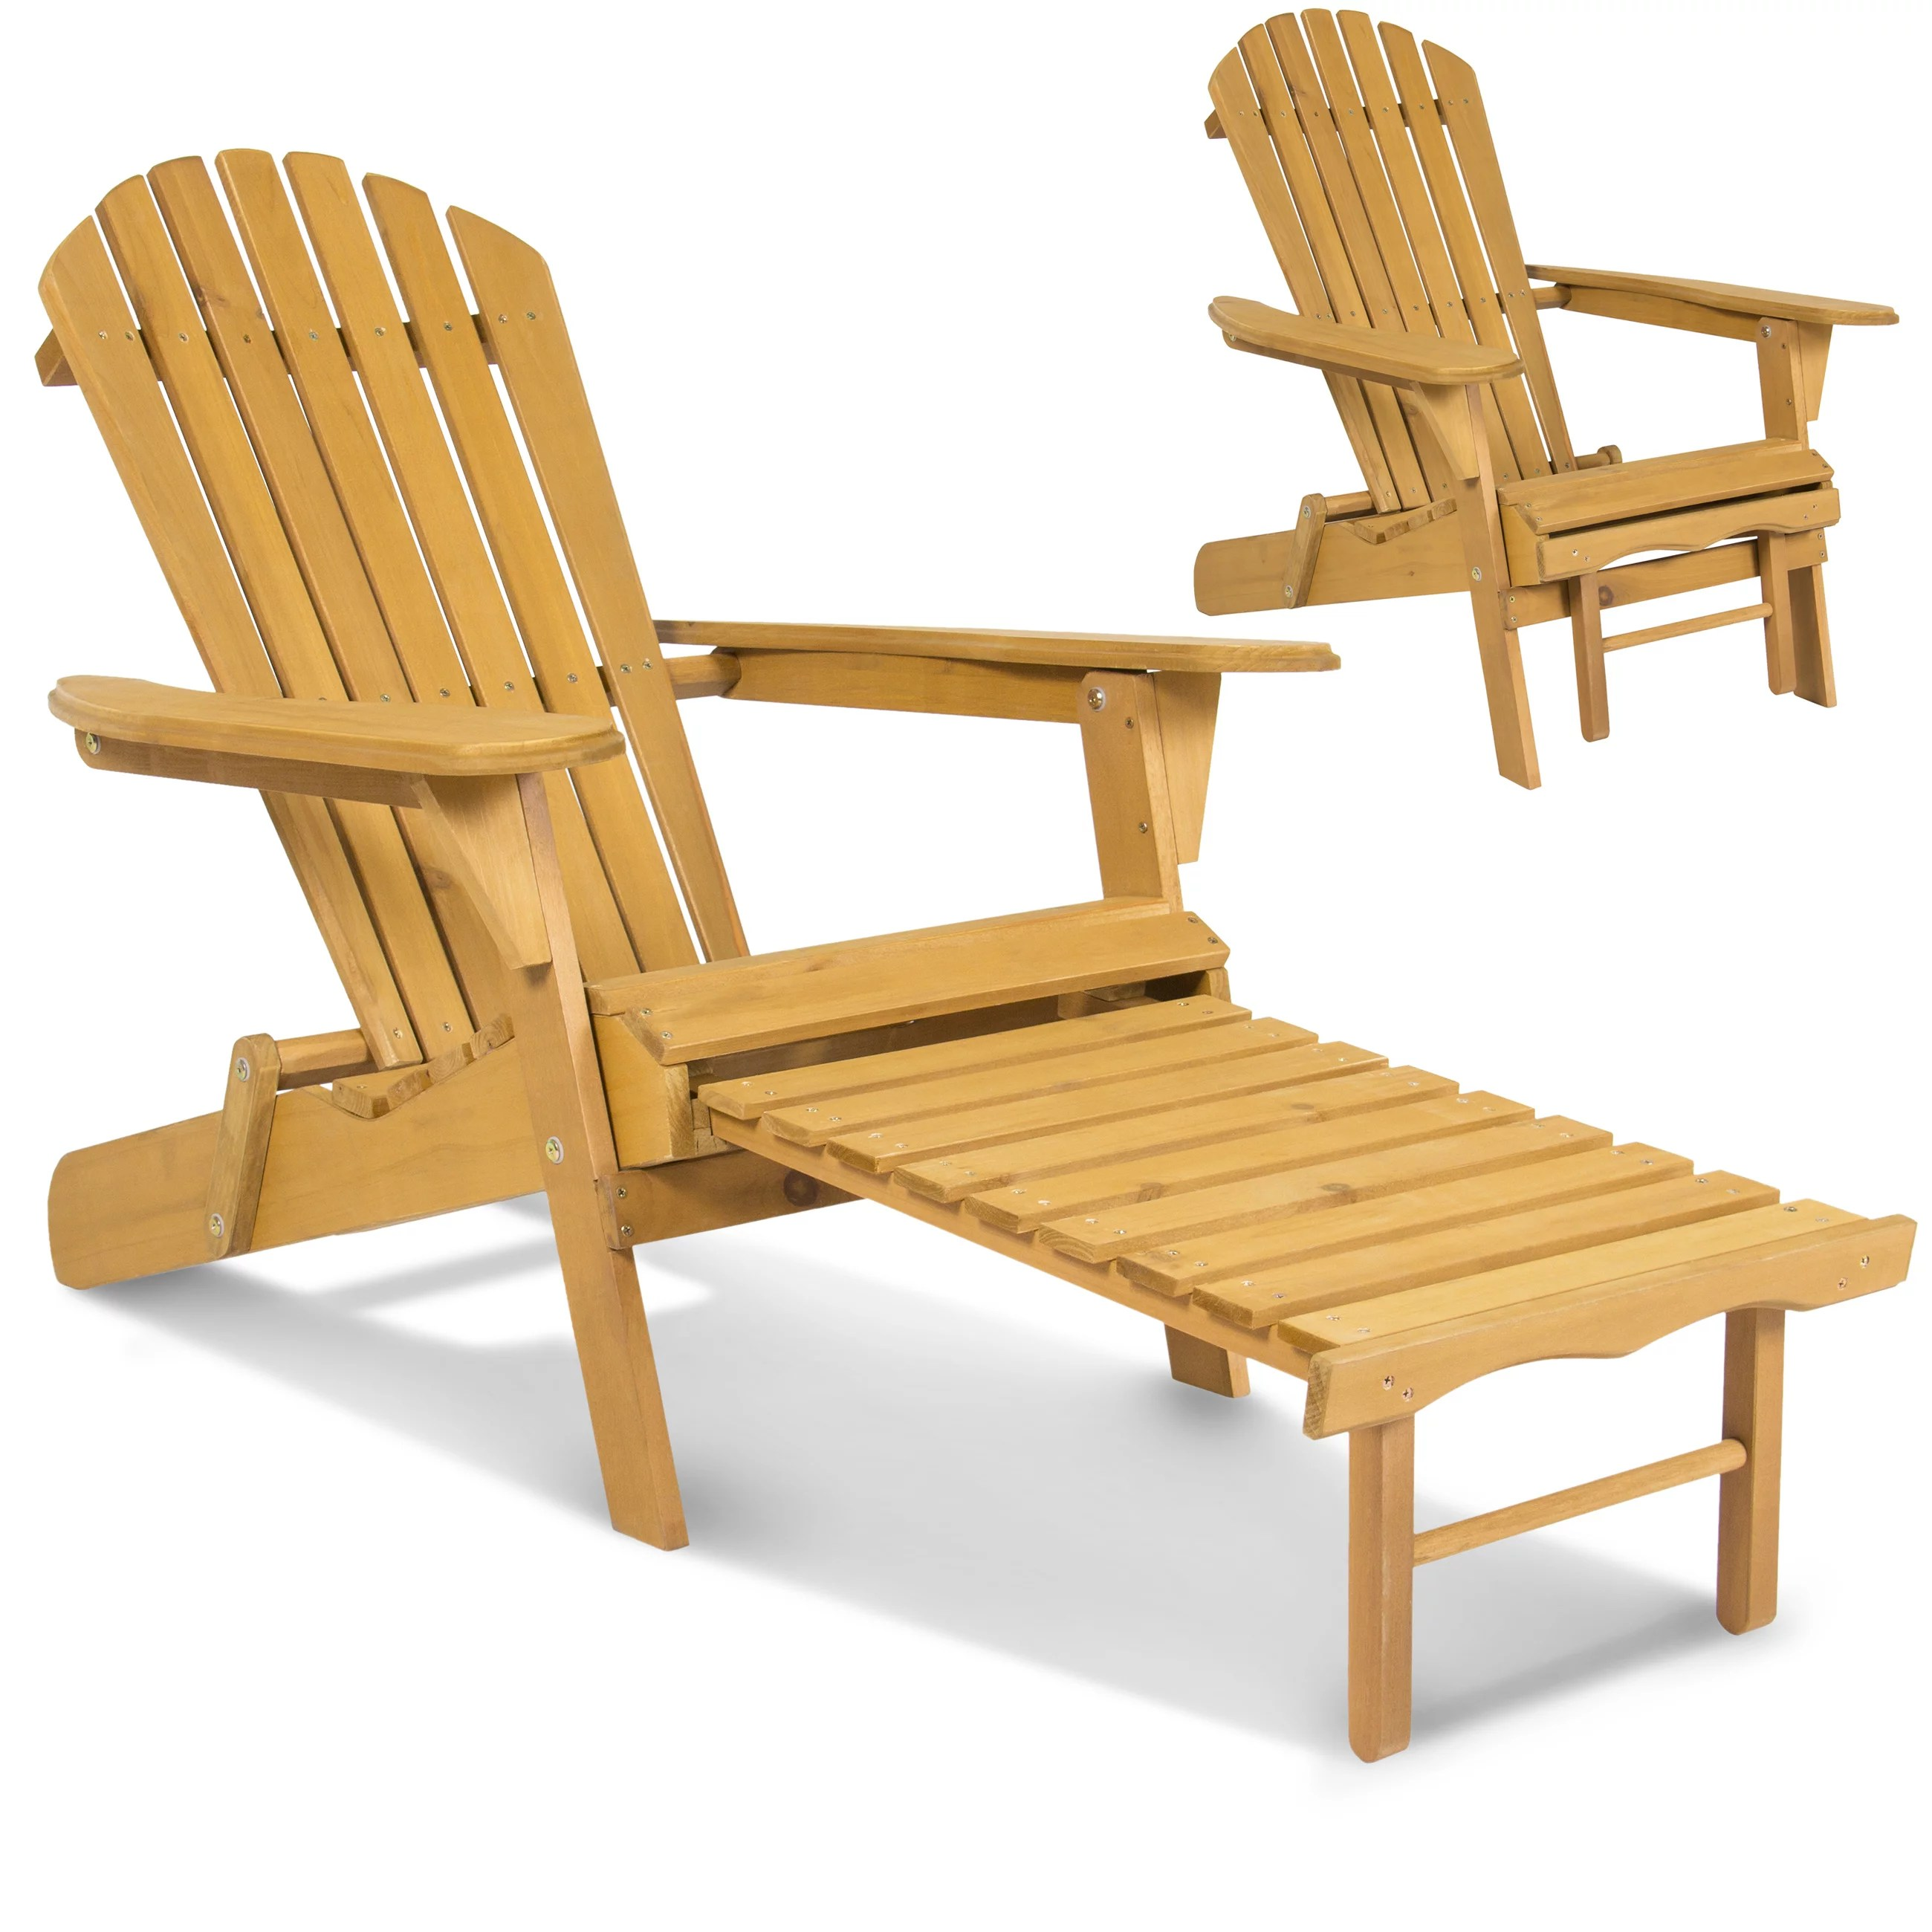 wooden porch chairs clearwater beach chair rentals best choice products foldable wood adirondack w pull out ottoman walmart com